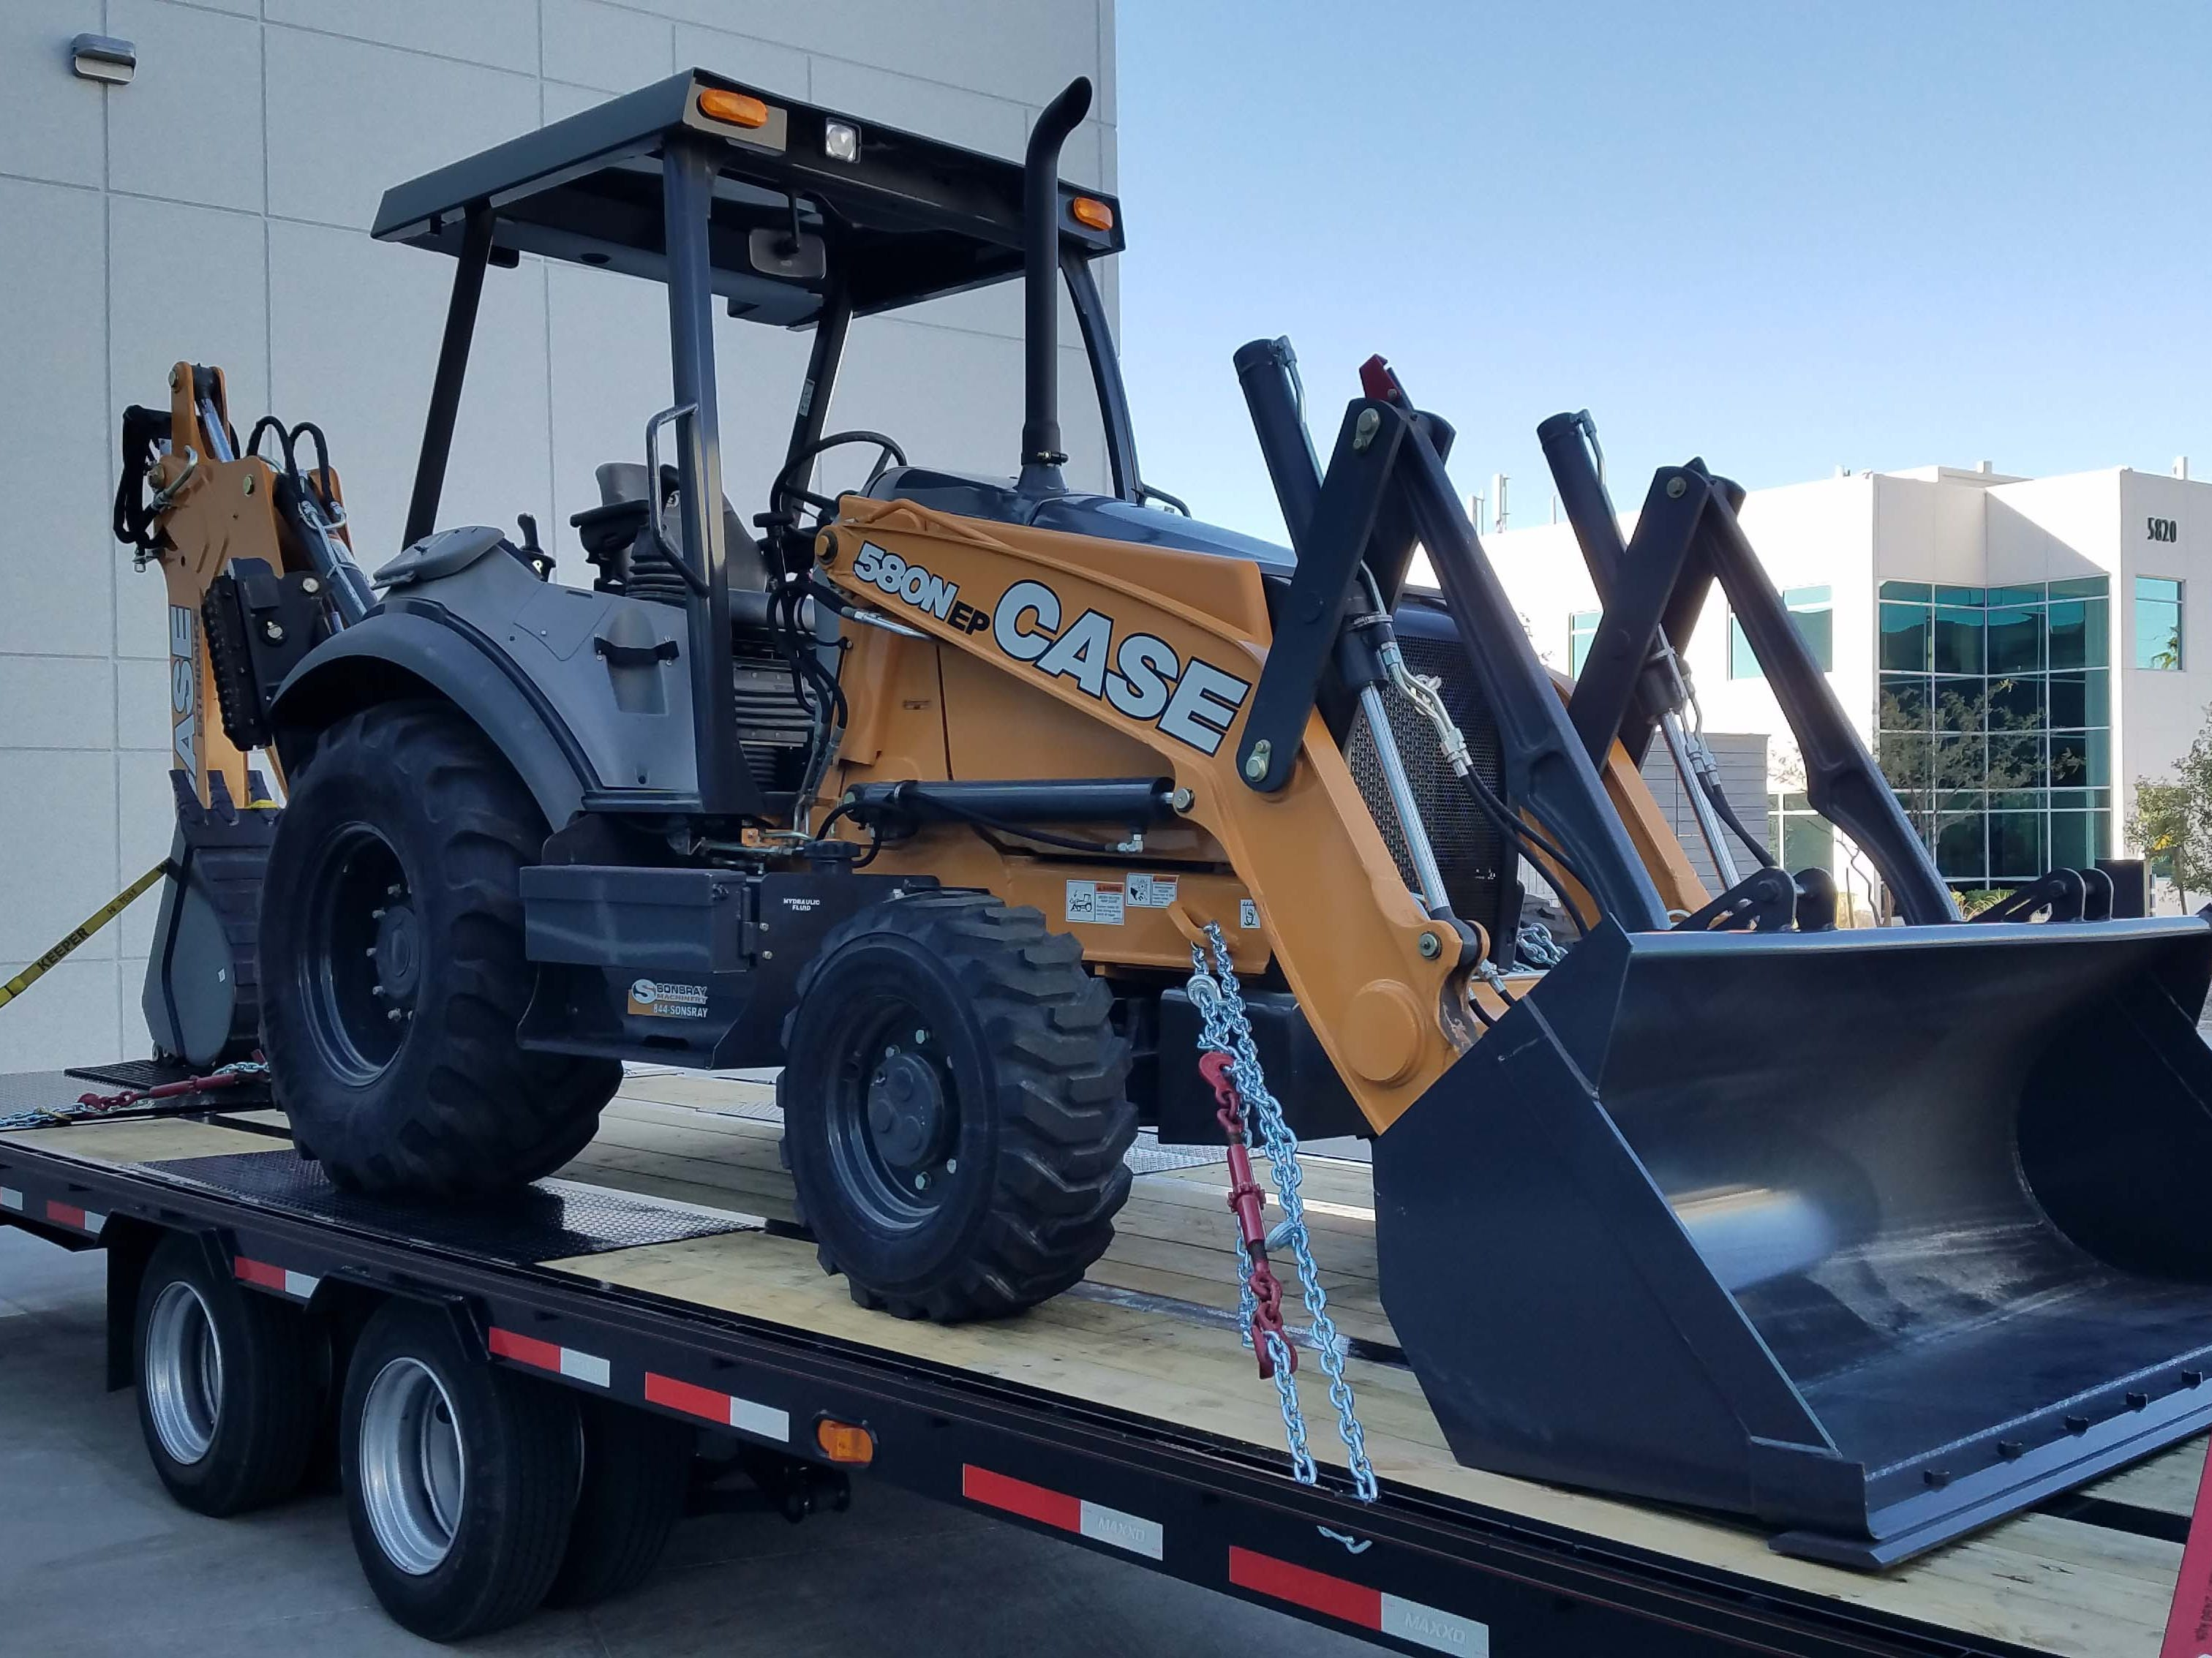 Have Ram 3500 Heavy Duty, will travel. This backhoe is part of a 35,100-pound package that sets a record for HD towing.